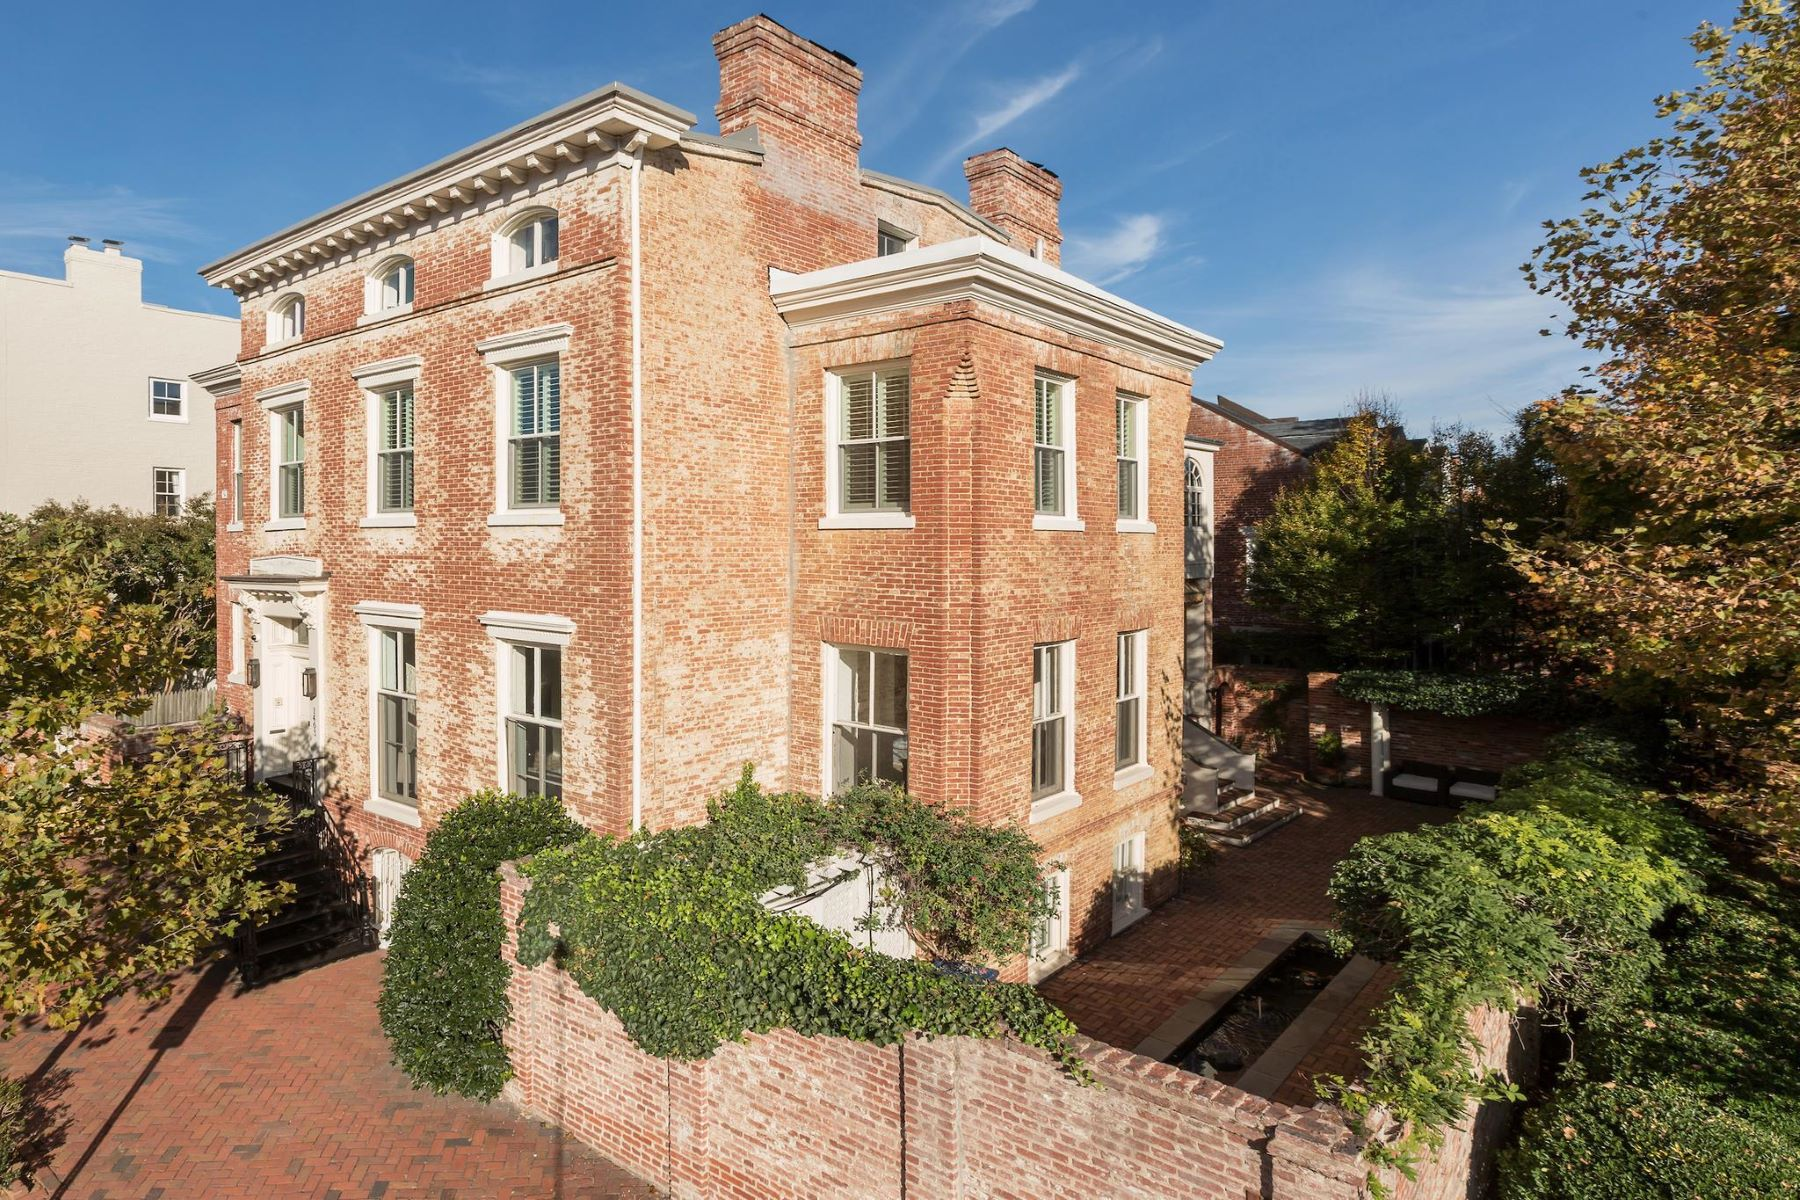 Single Family Home for Sale at Georgetown 1403 30th St Nw Washington, District Of Columbia 20007 United States